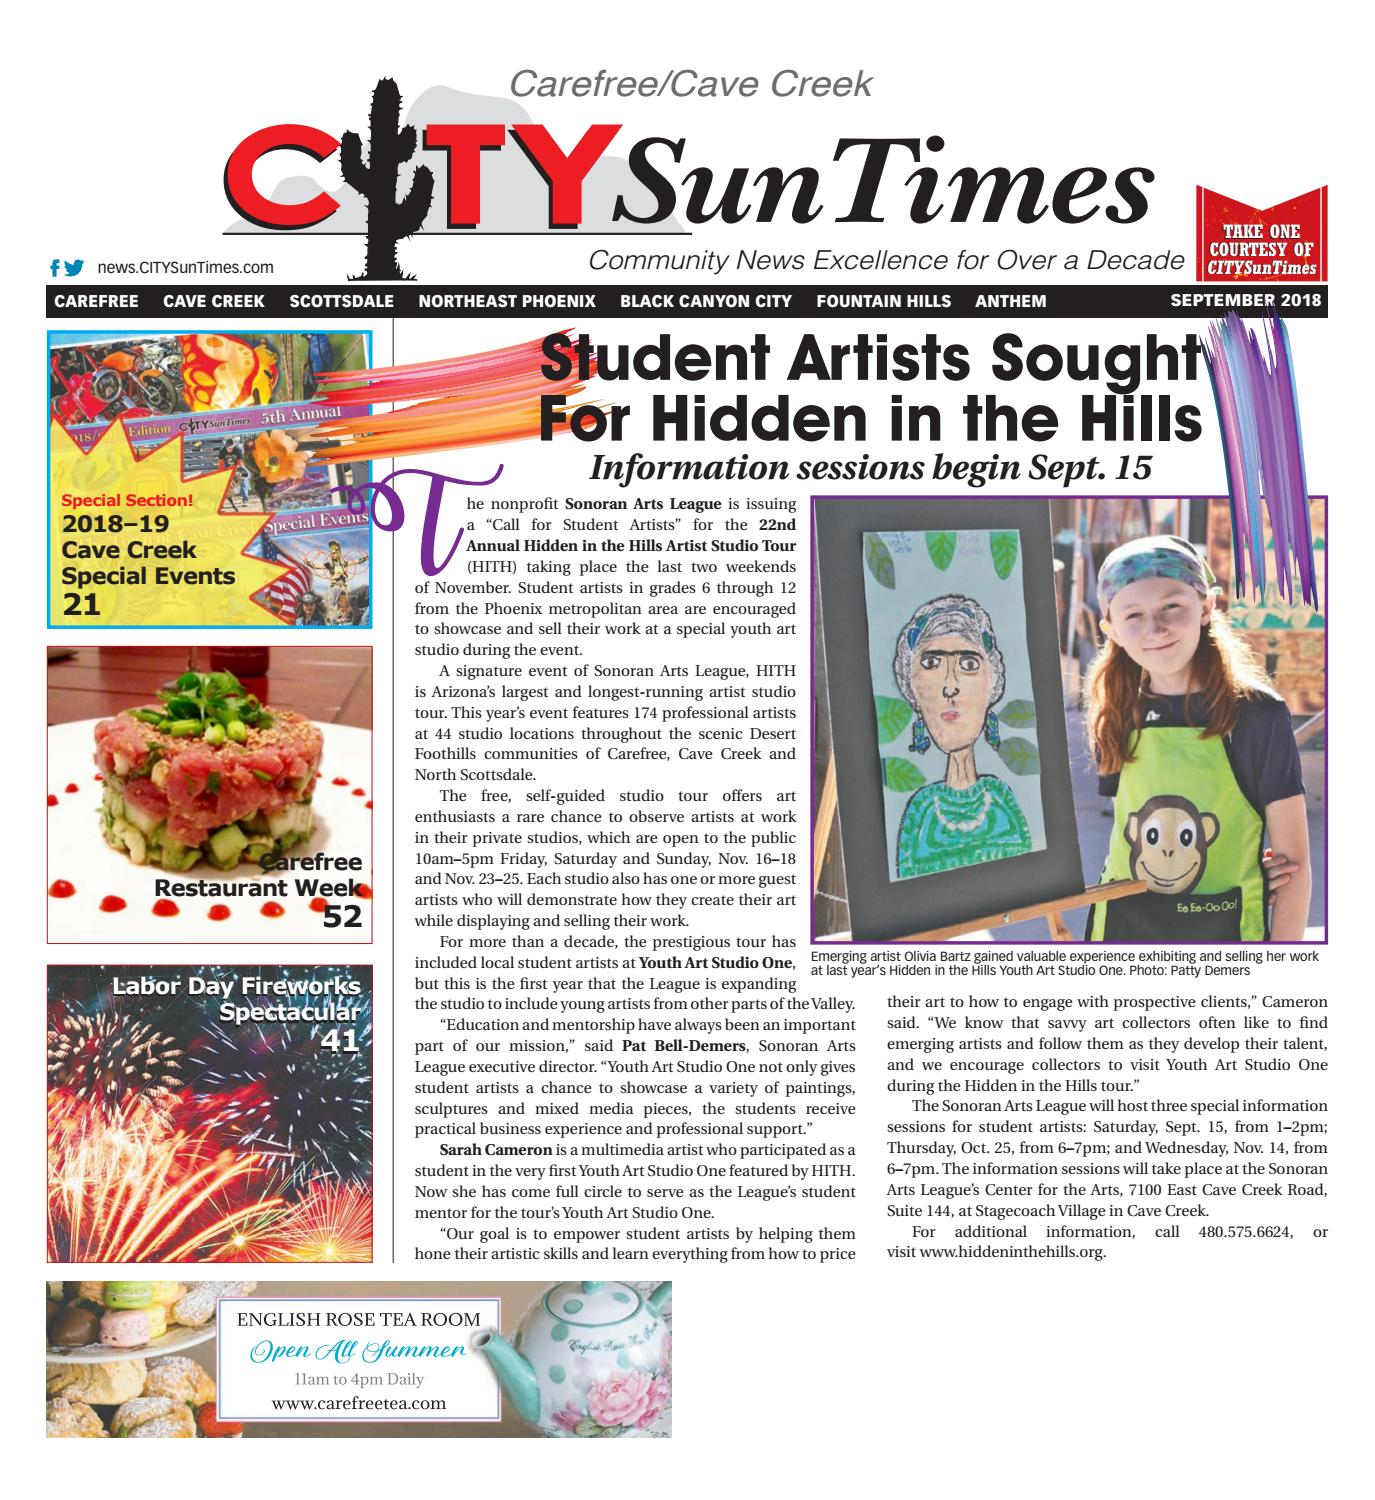 Carefree/Cave Creek CITYSunTimes September 2018 Issue by